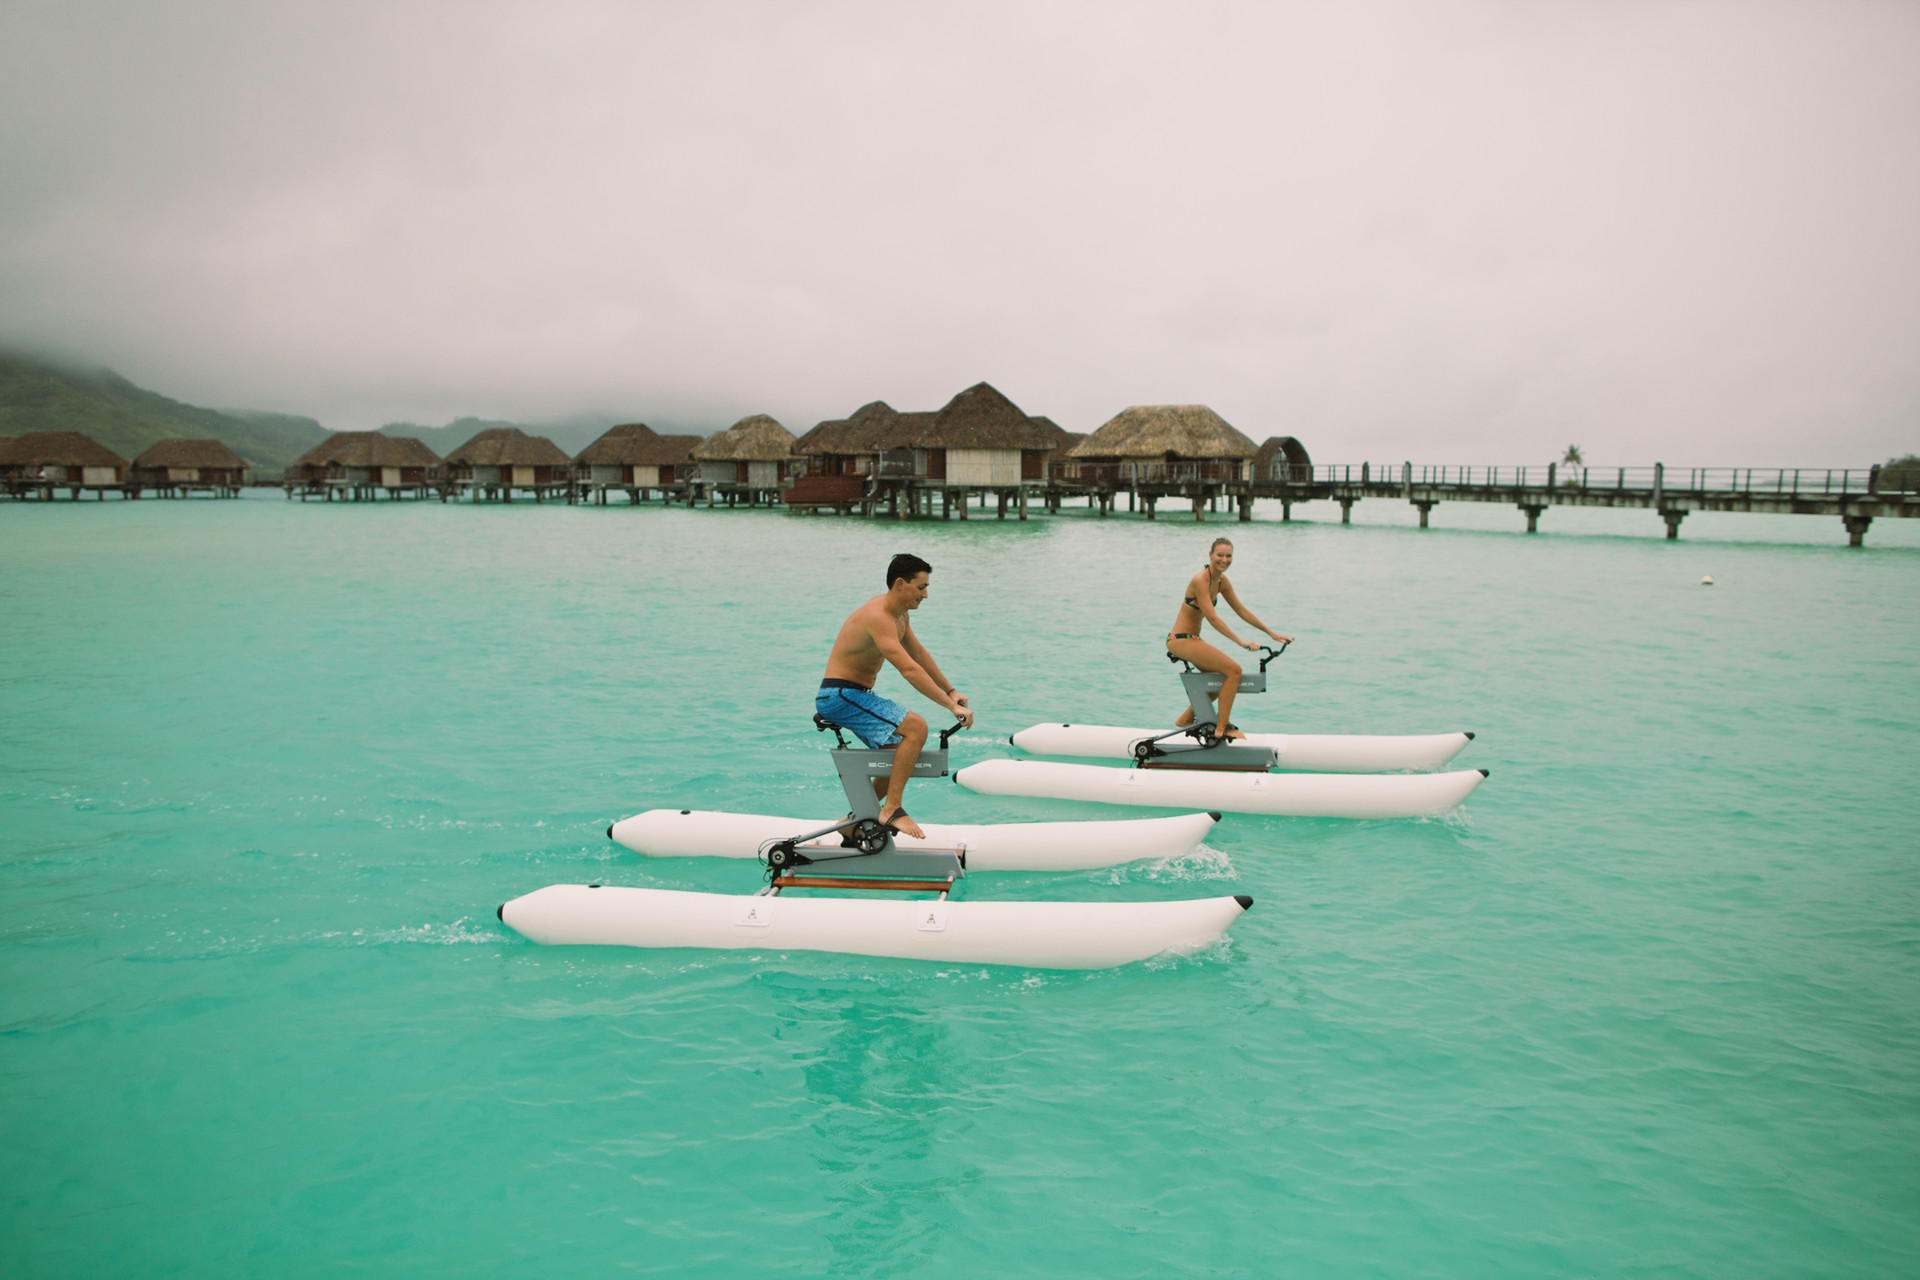 Bora Bora Vacations >> New Floating Water Bikes Expand Goway's Range of Tahiti Vacations